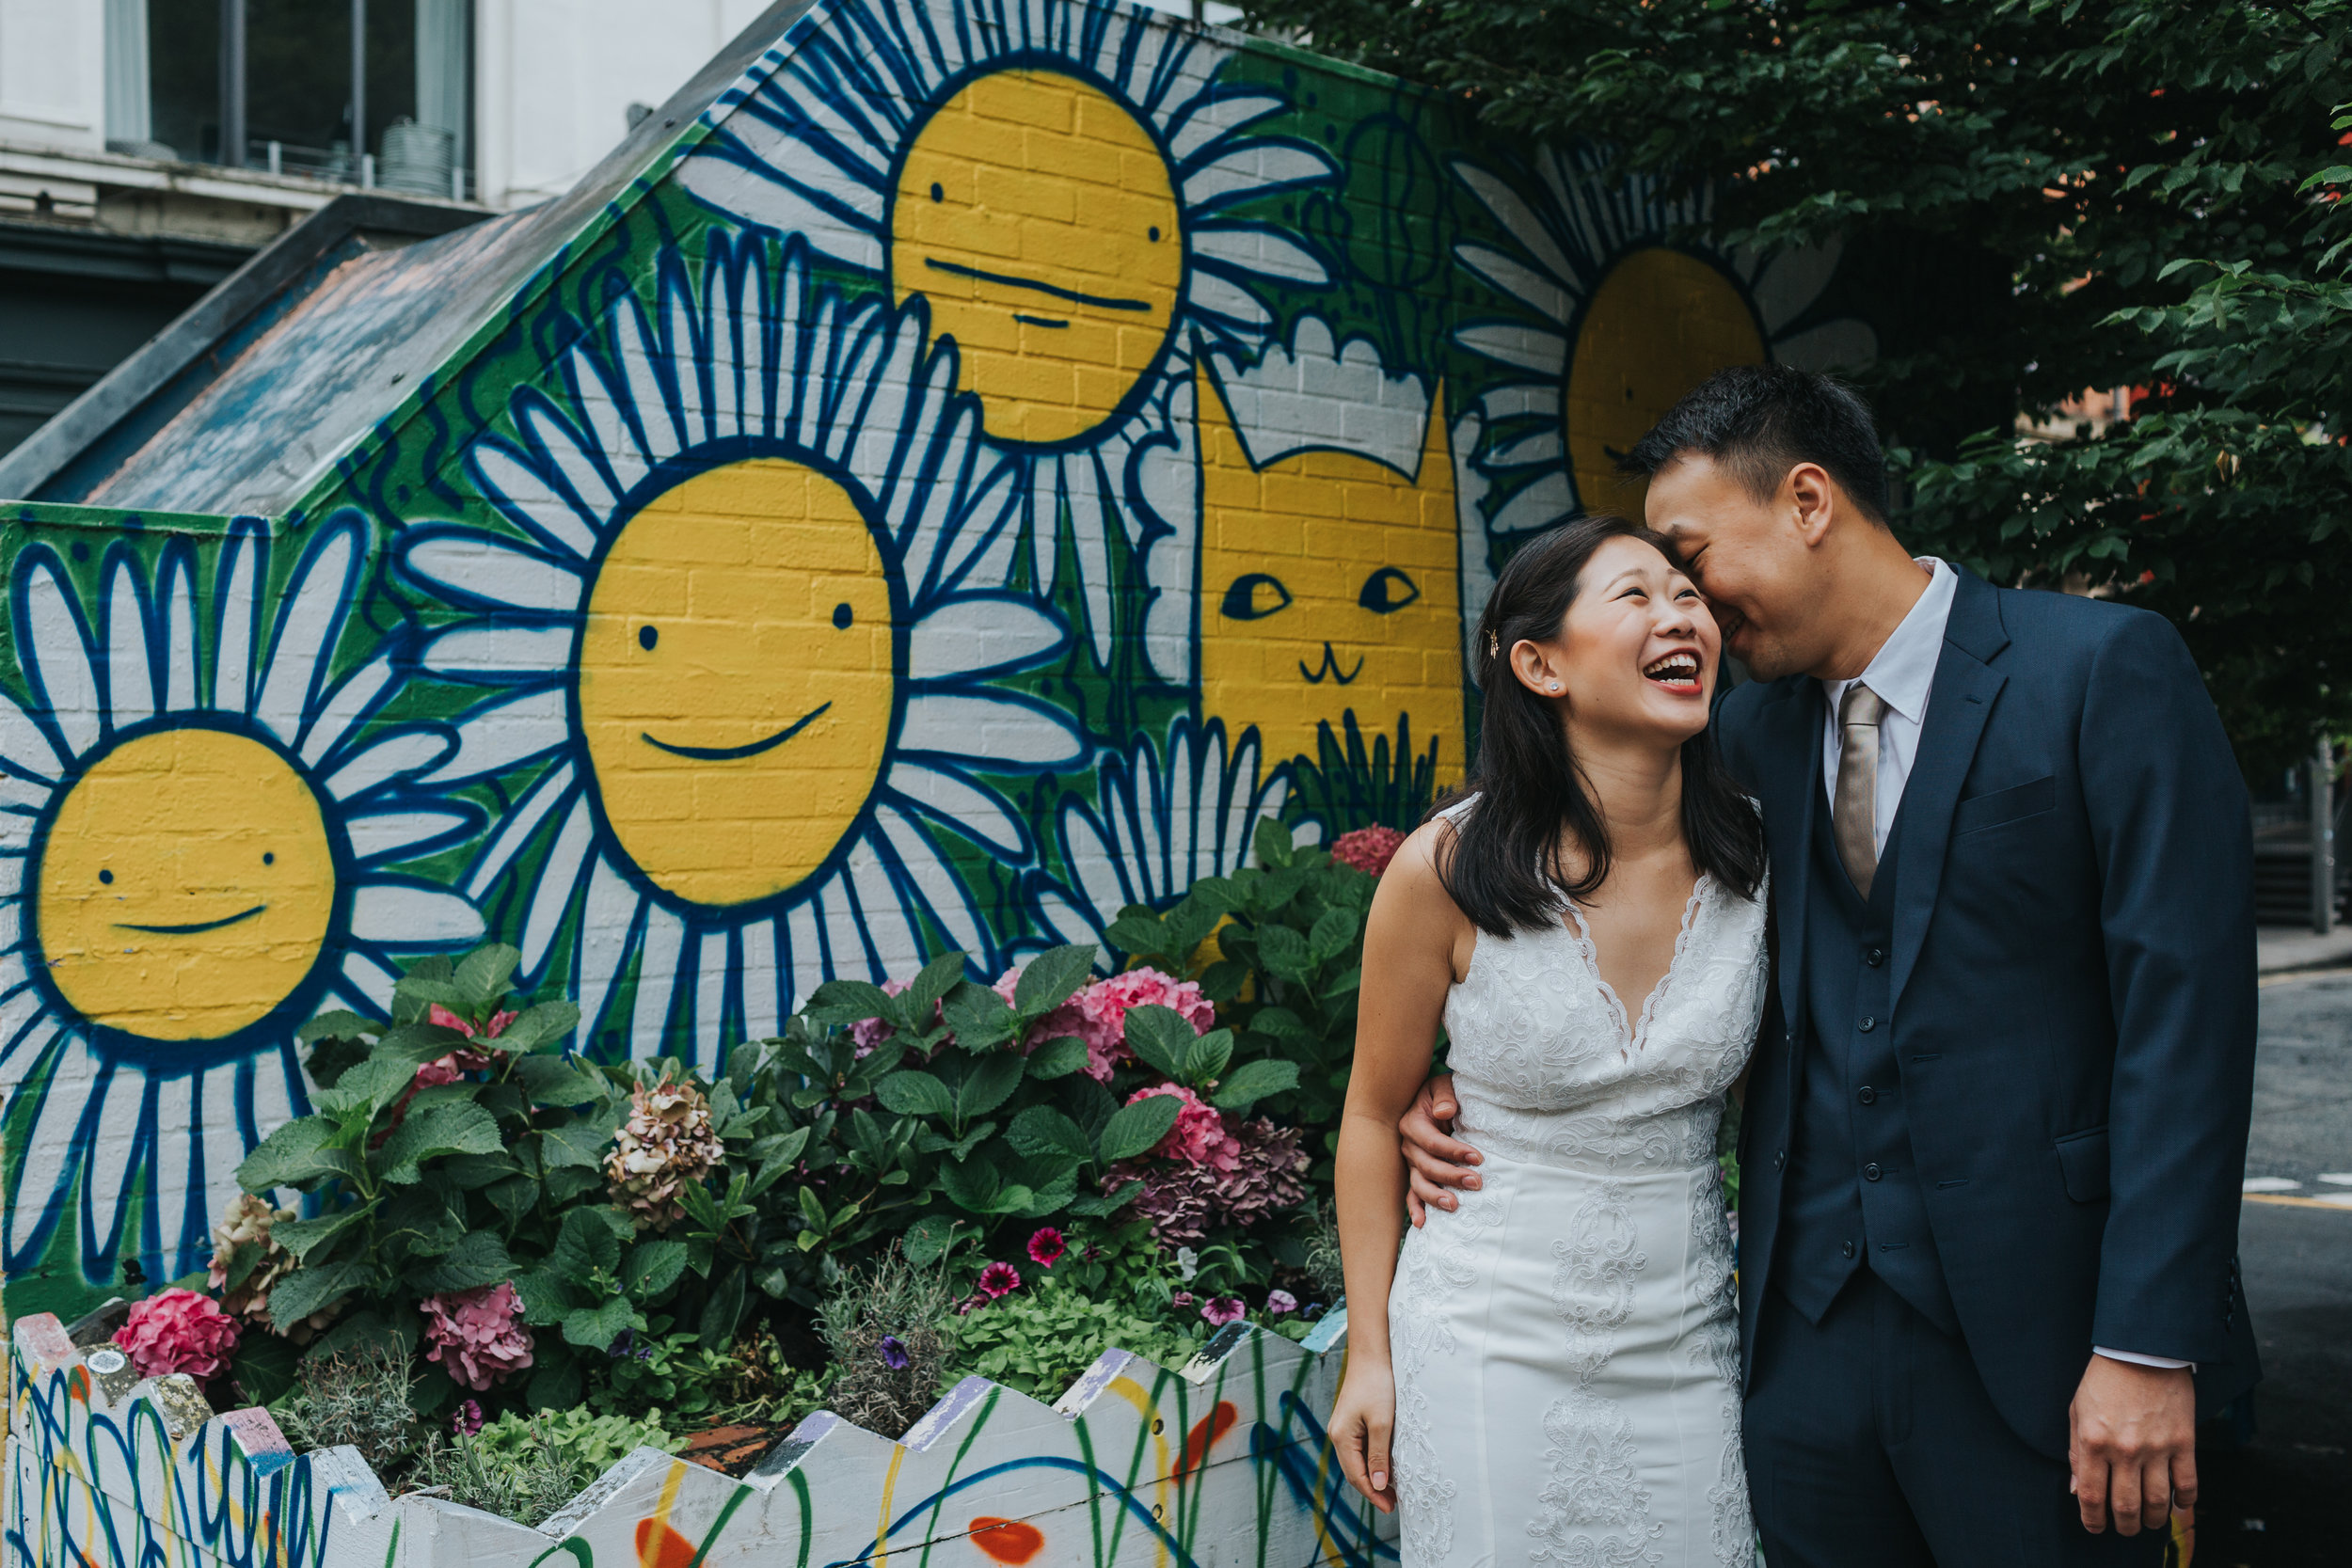 Couple laughing together in front of sunshine graffiti in Manchester's Northern Quarter.